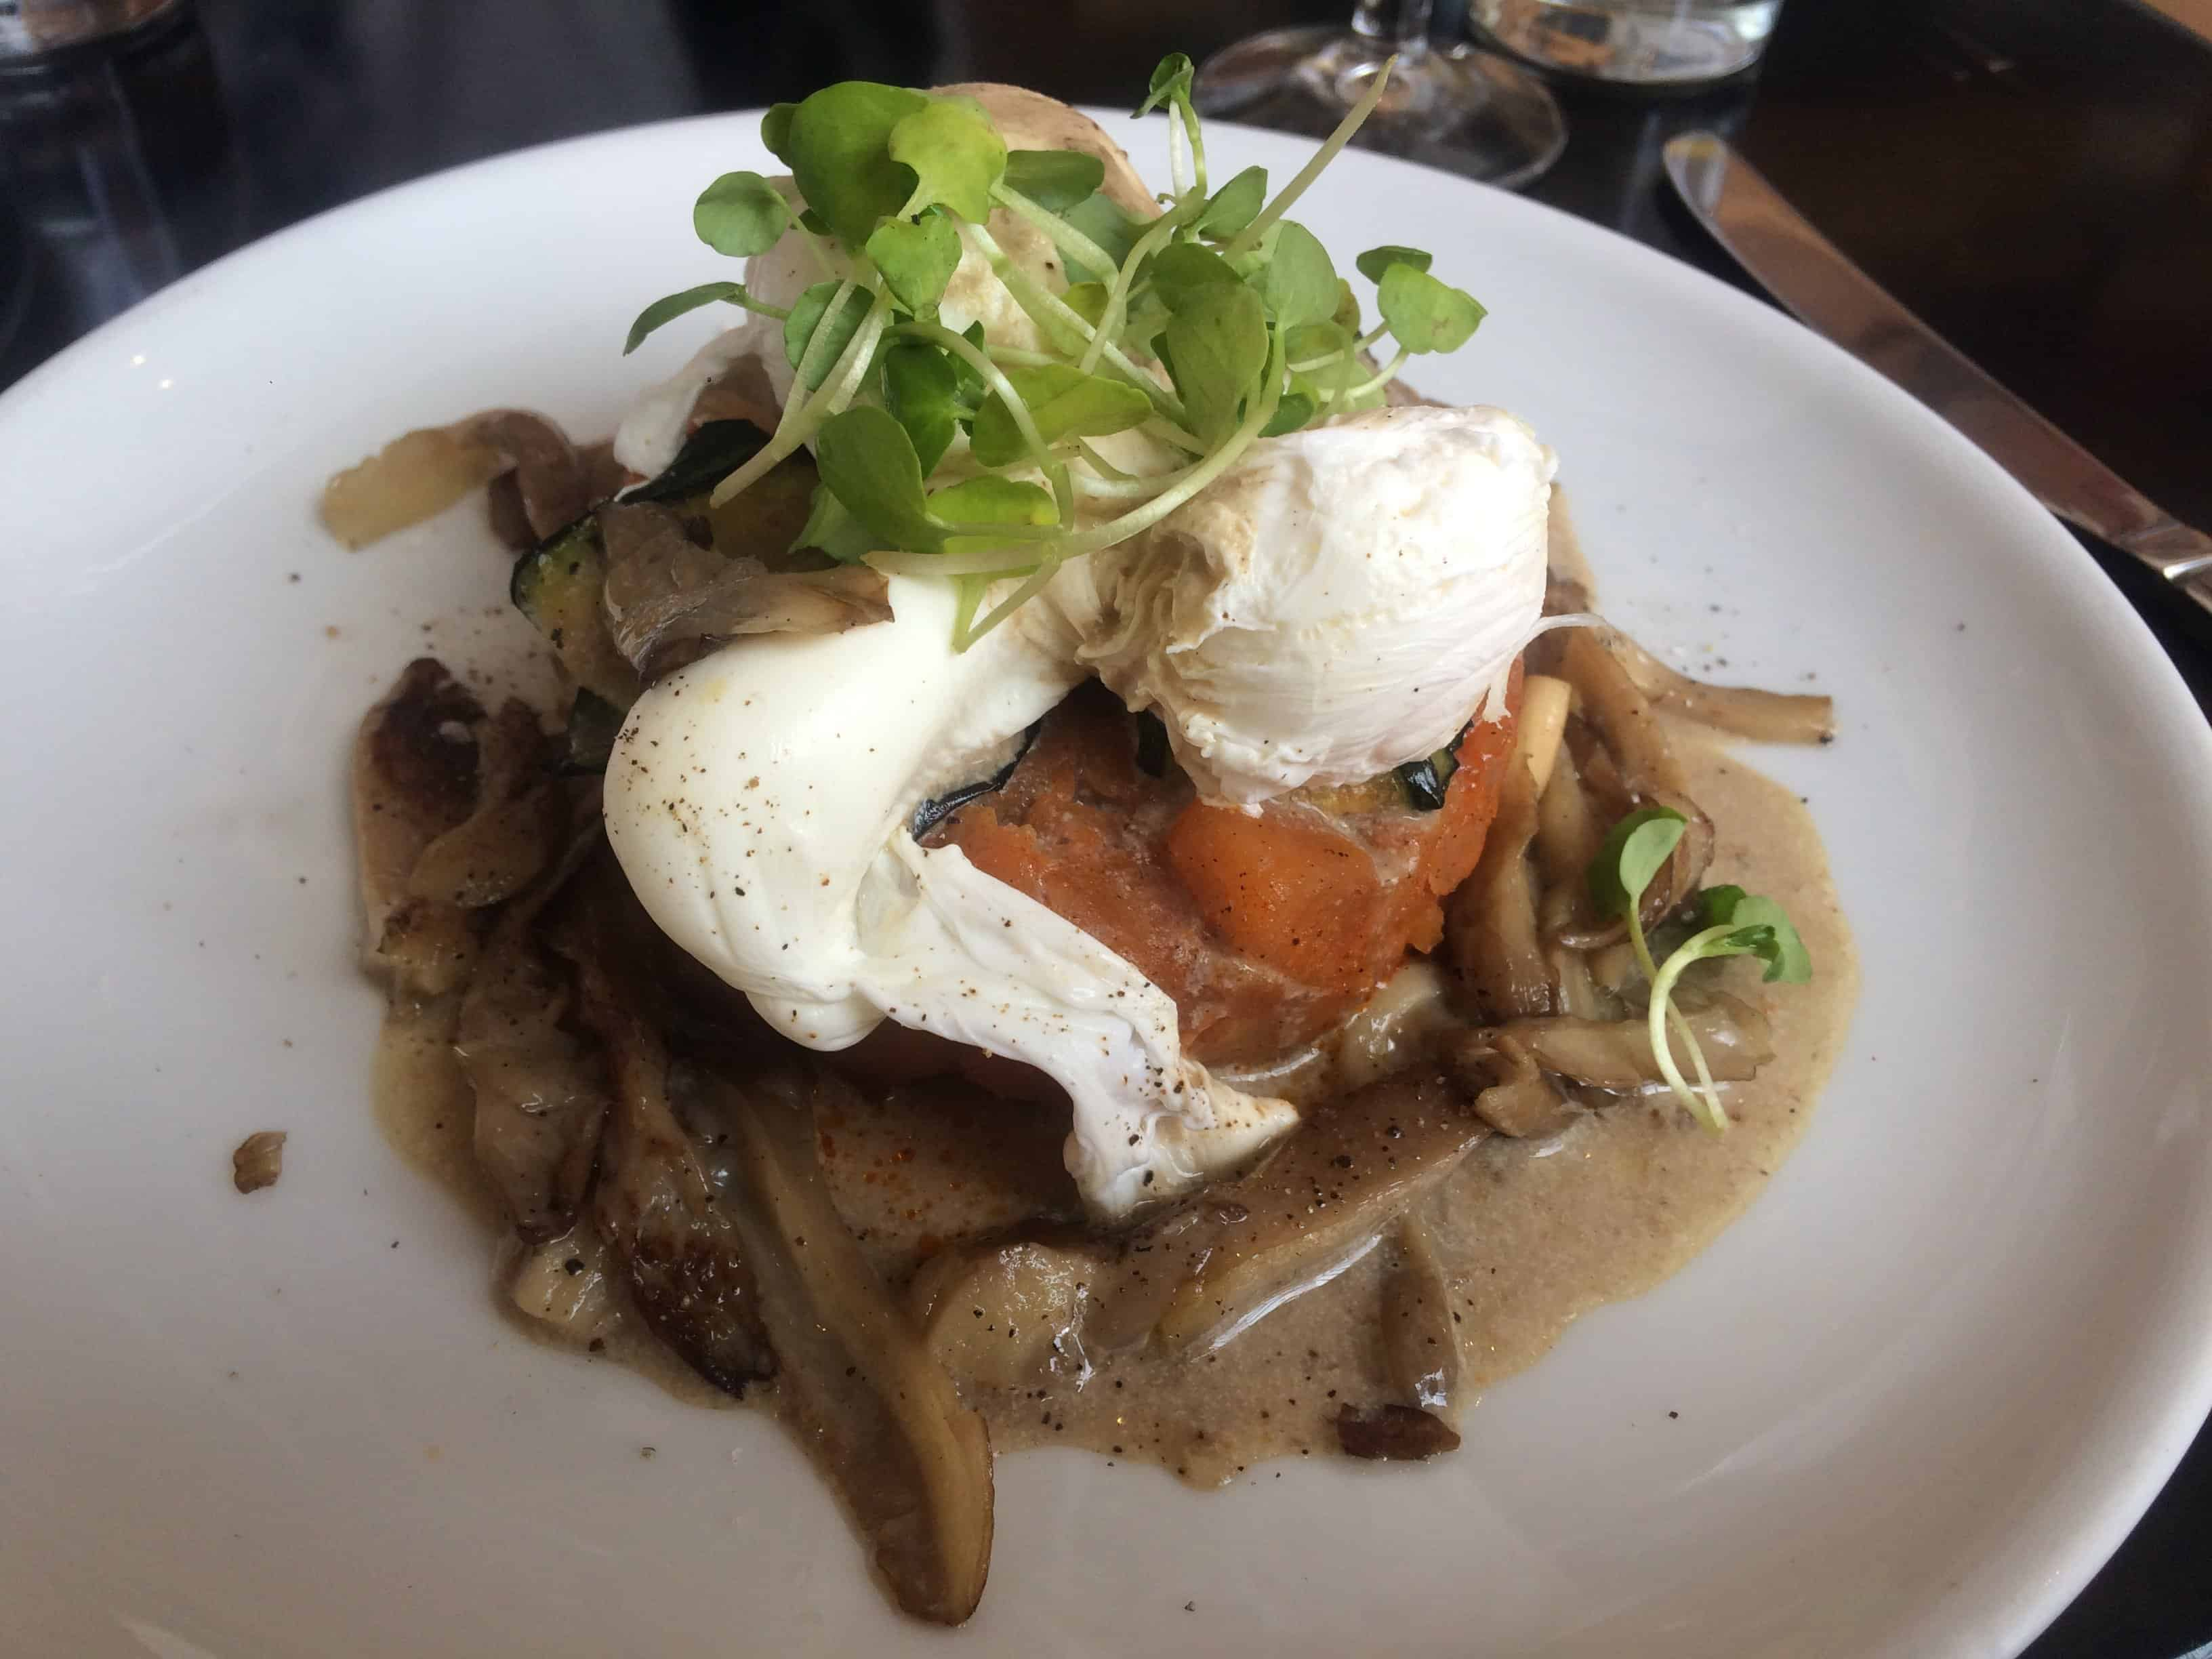 My root vegetable hash with mushrooms and poached eggs.